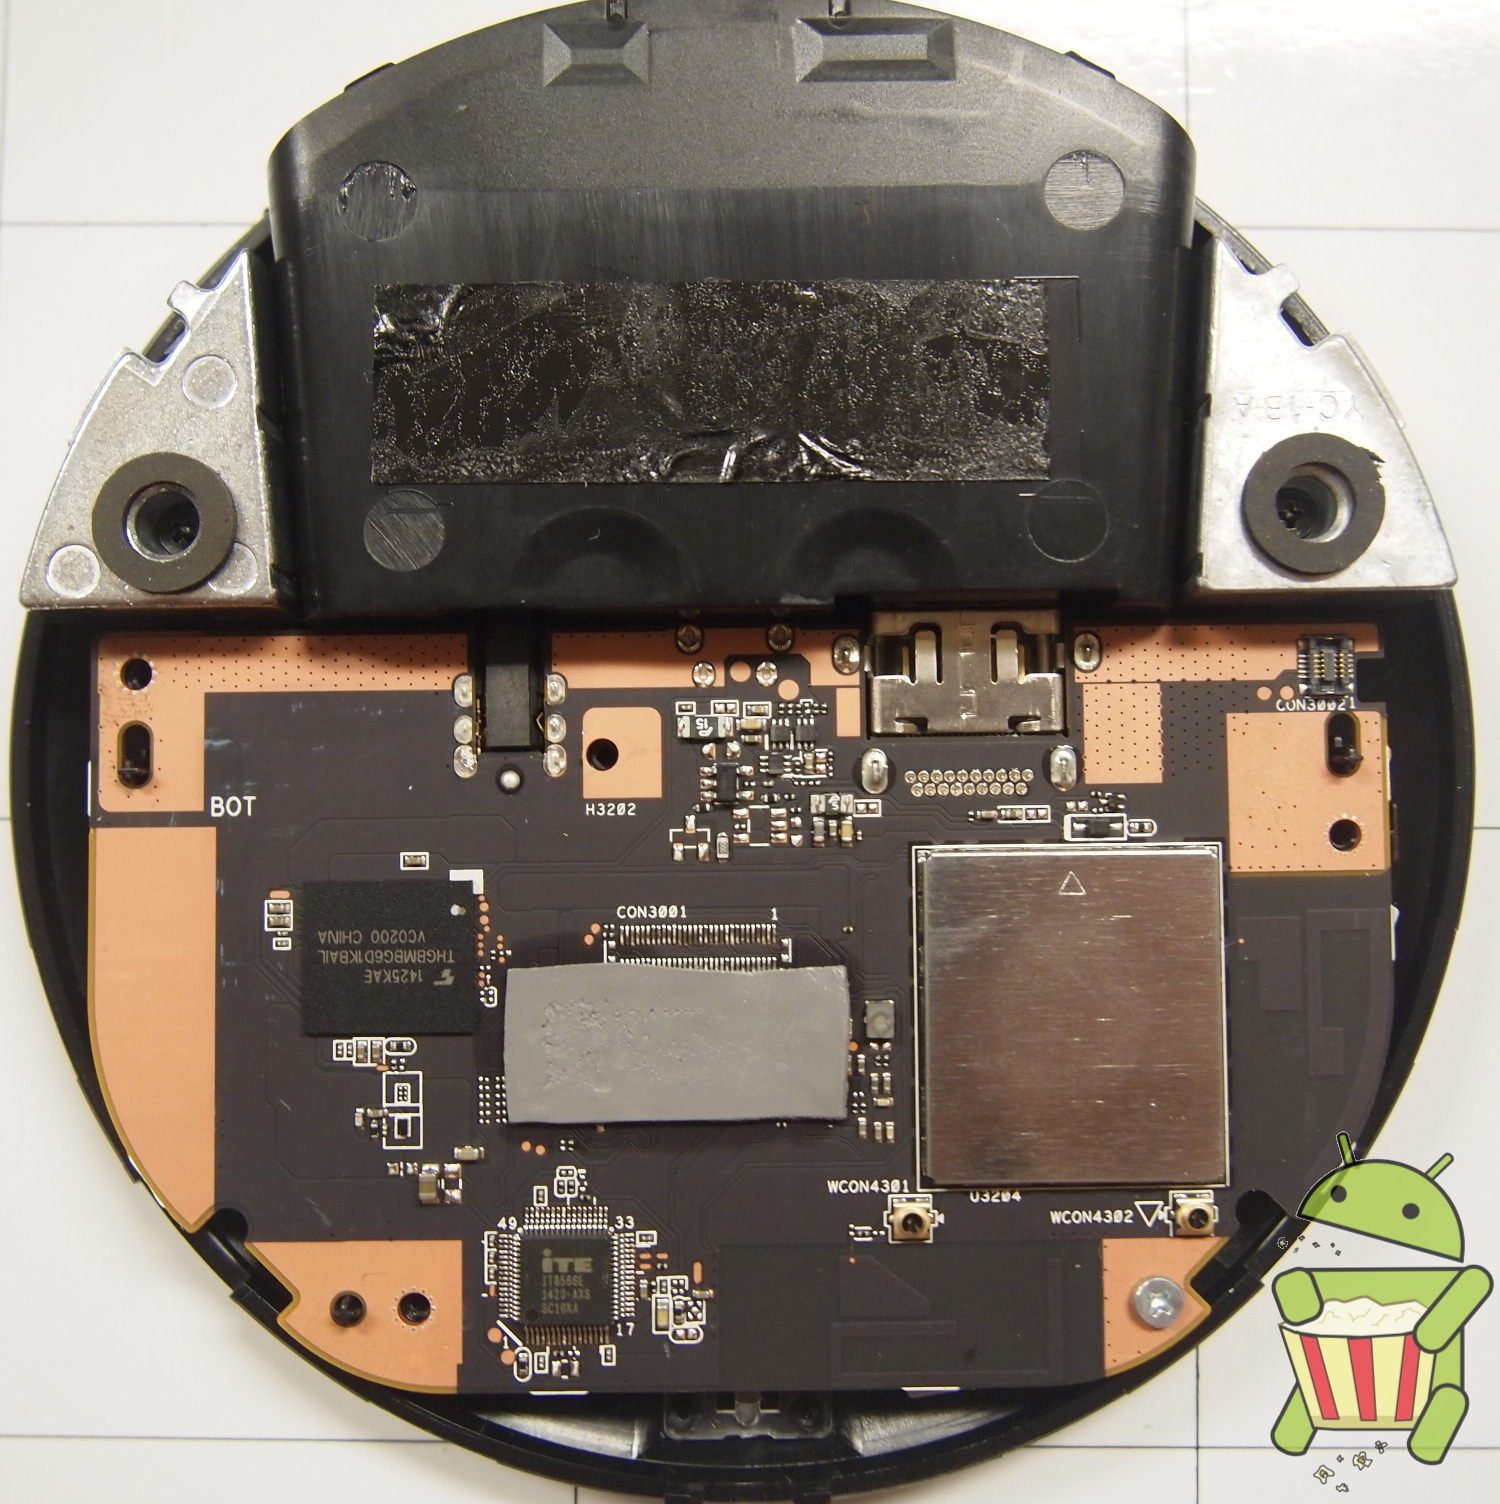 NP-Case-Open-Heatsink-Removed-Thermal.jpg